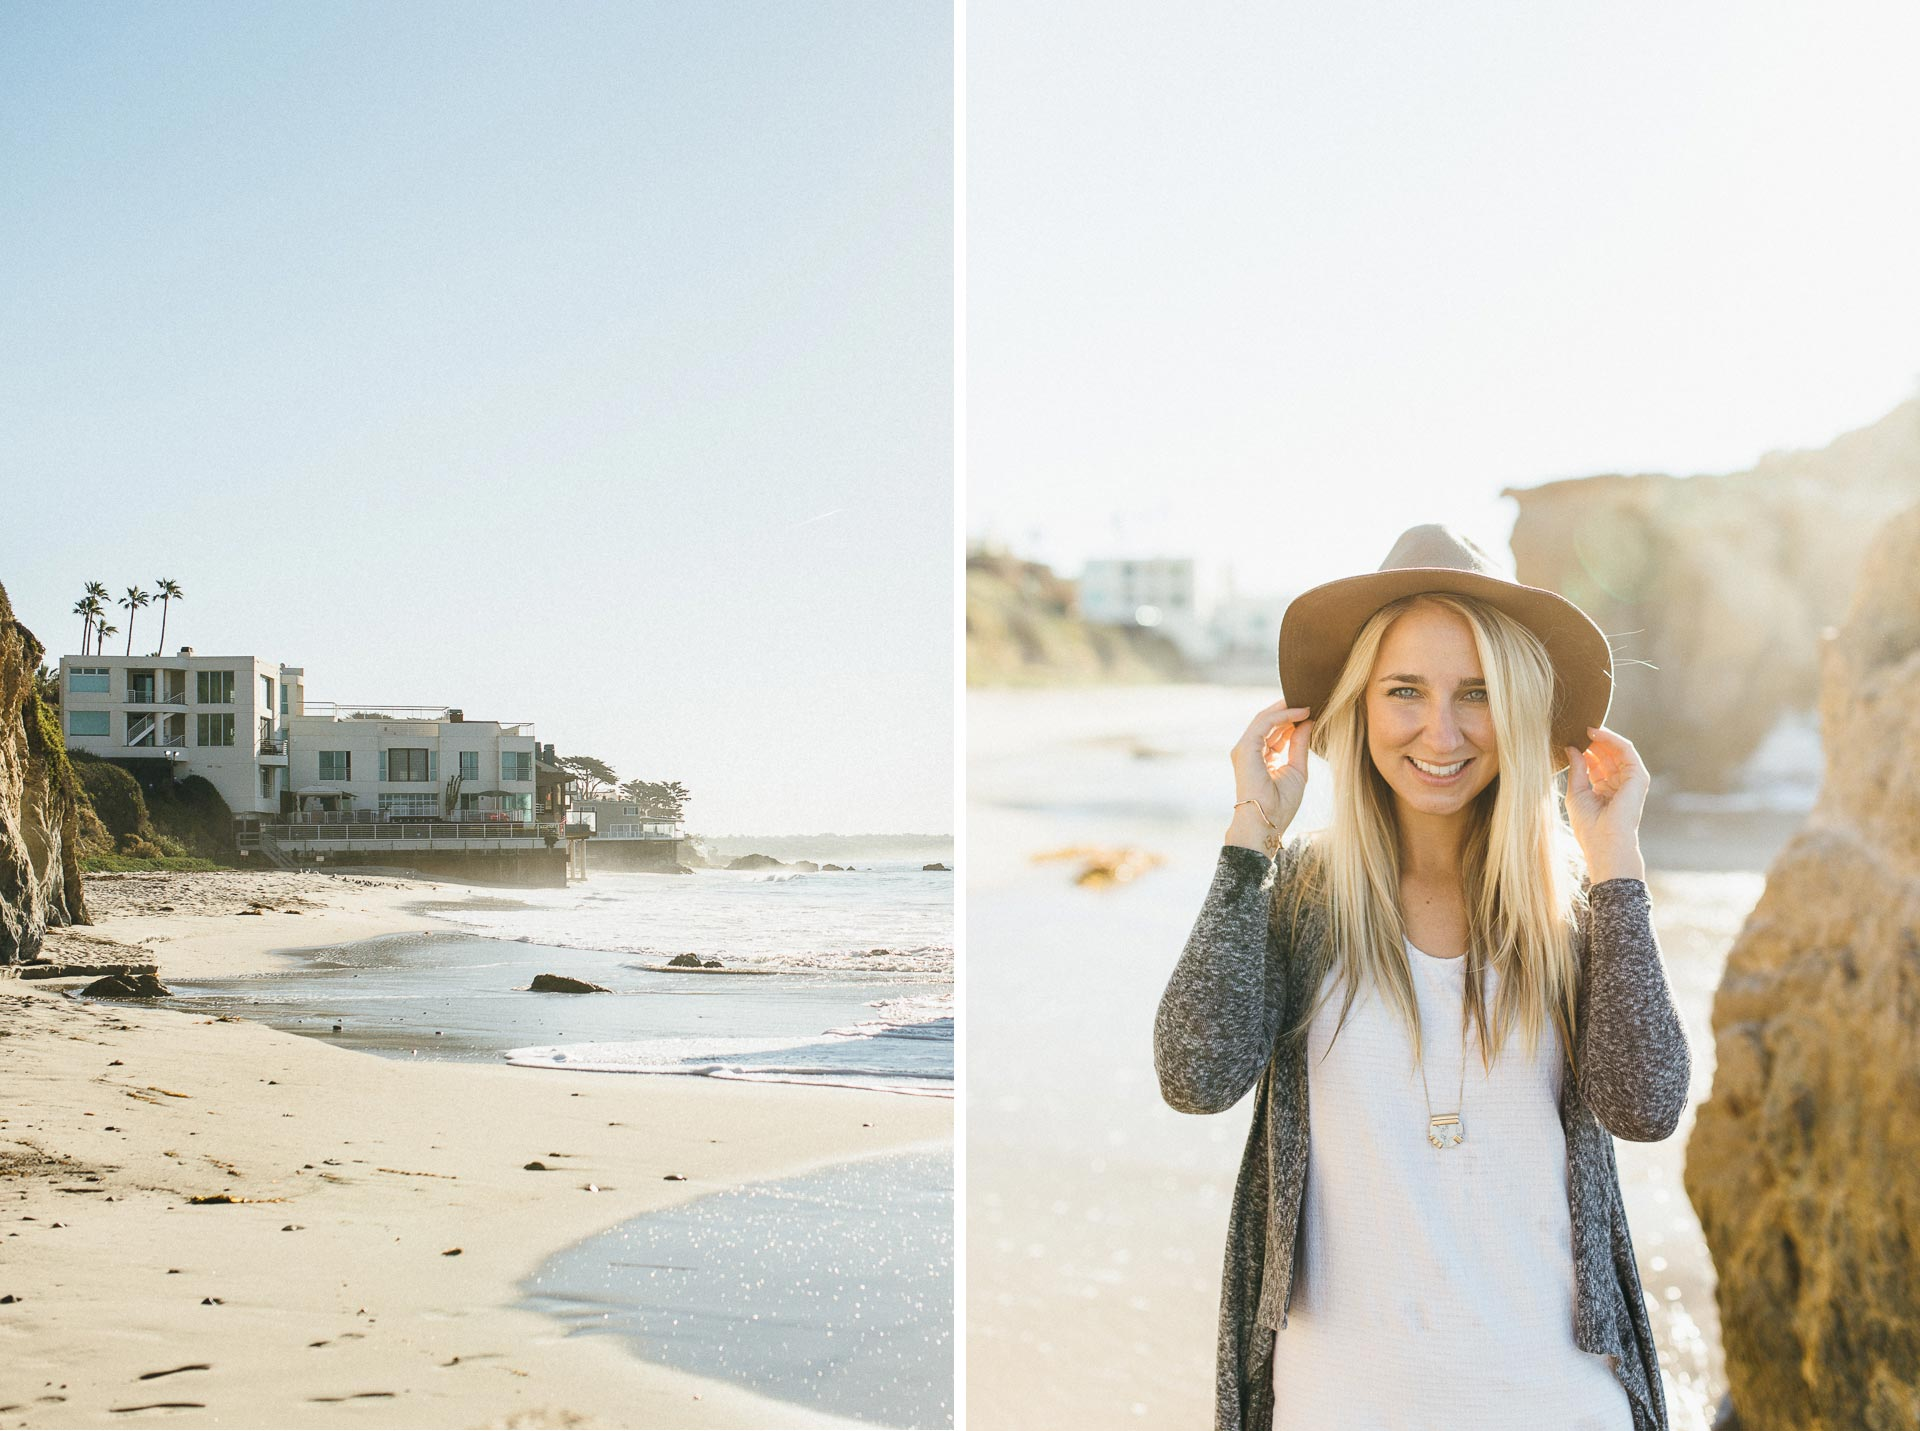 Carley_Jake_Lovesession_California_LosAngeles_ElMatadorBeach_JeanLaurentGaudy_MIX001